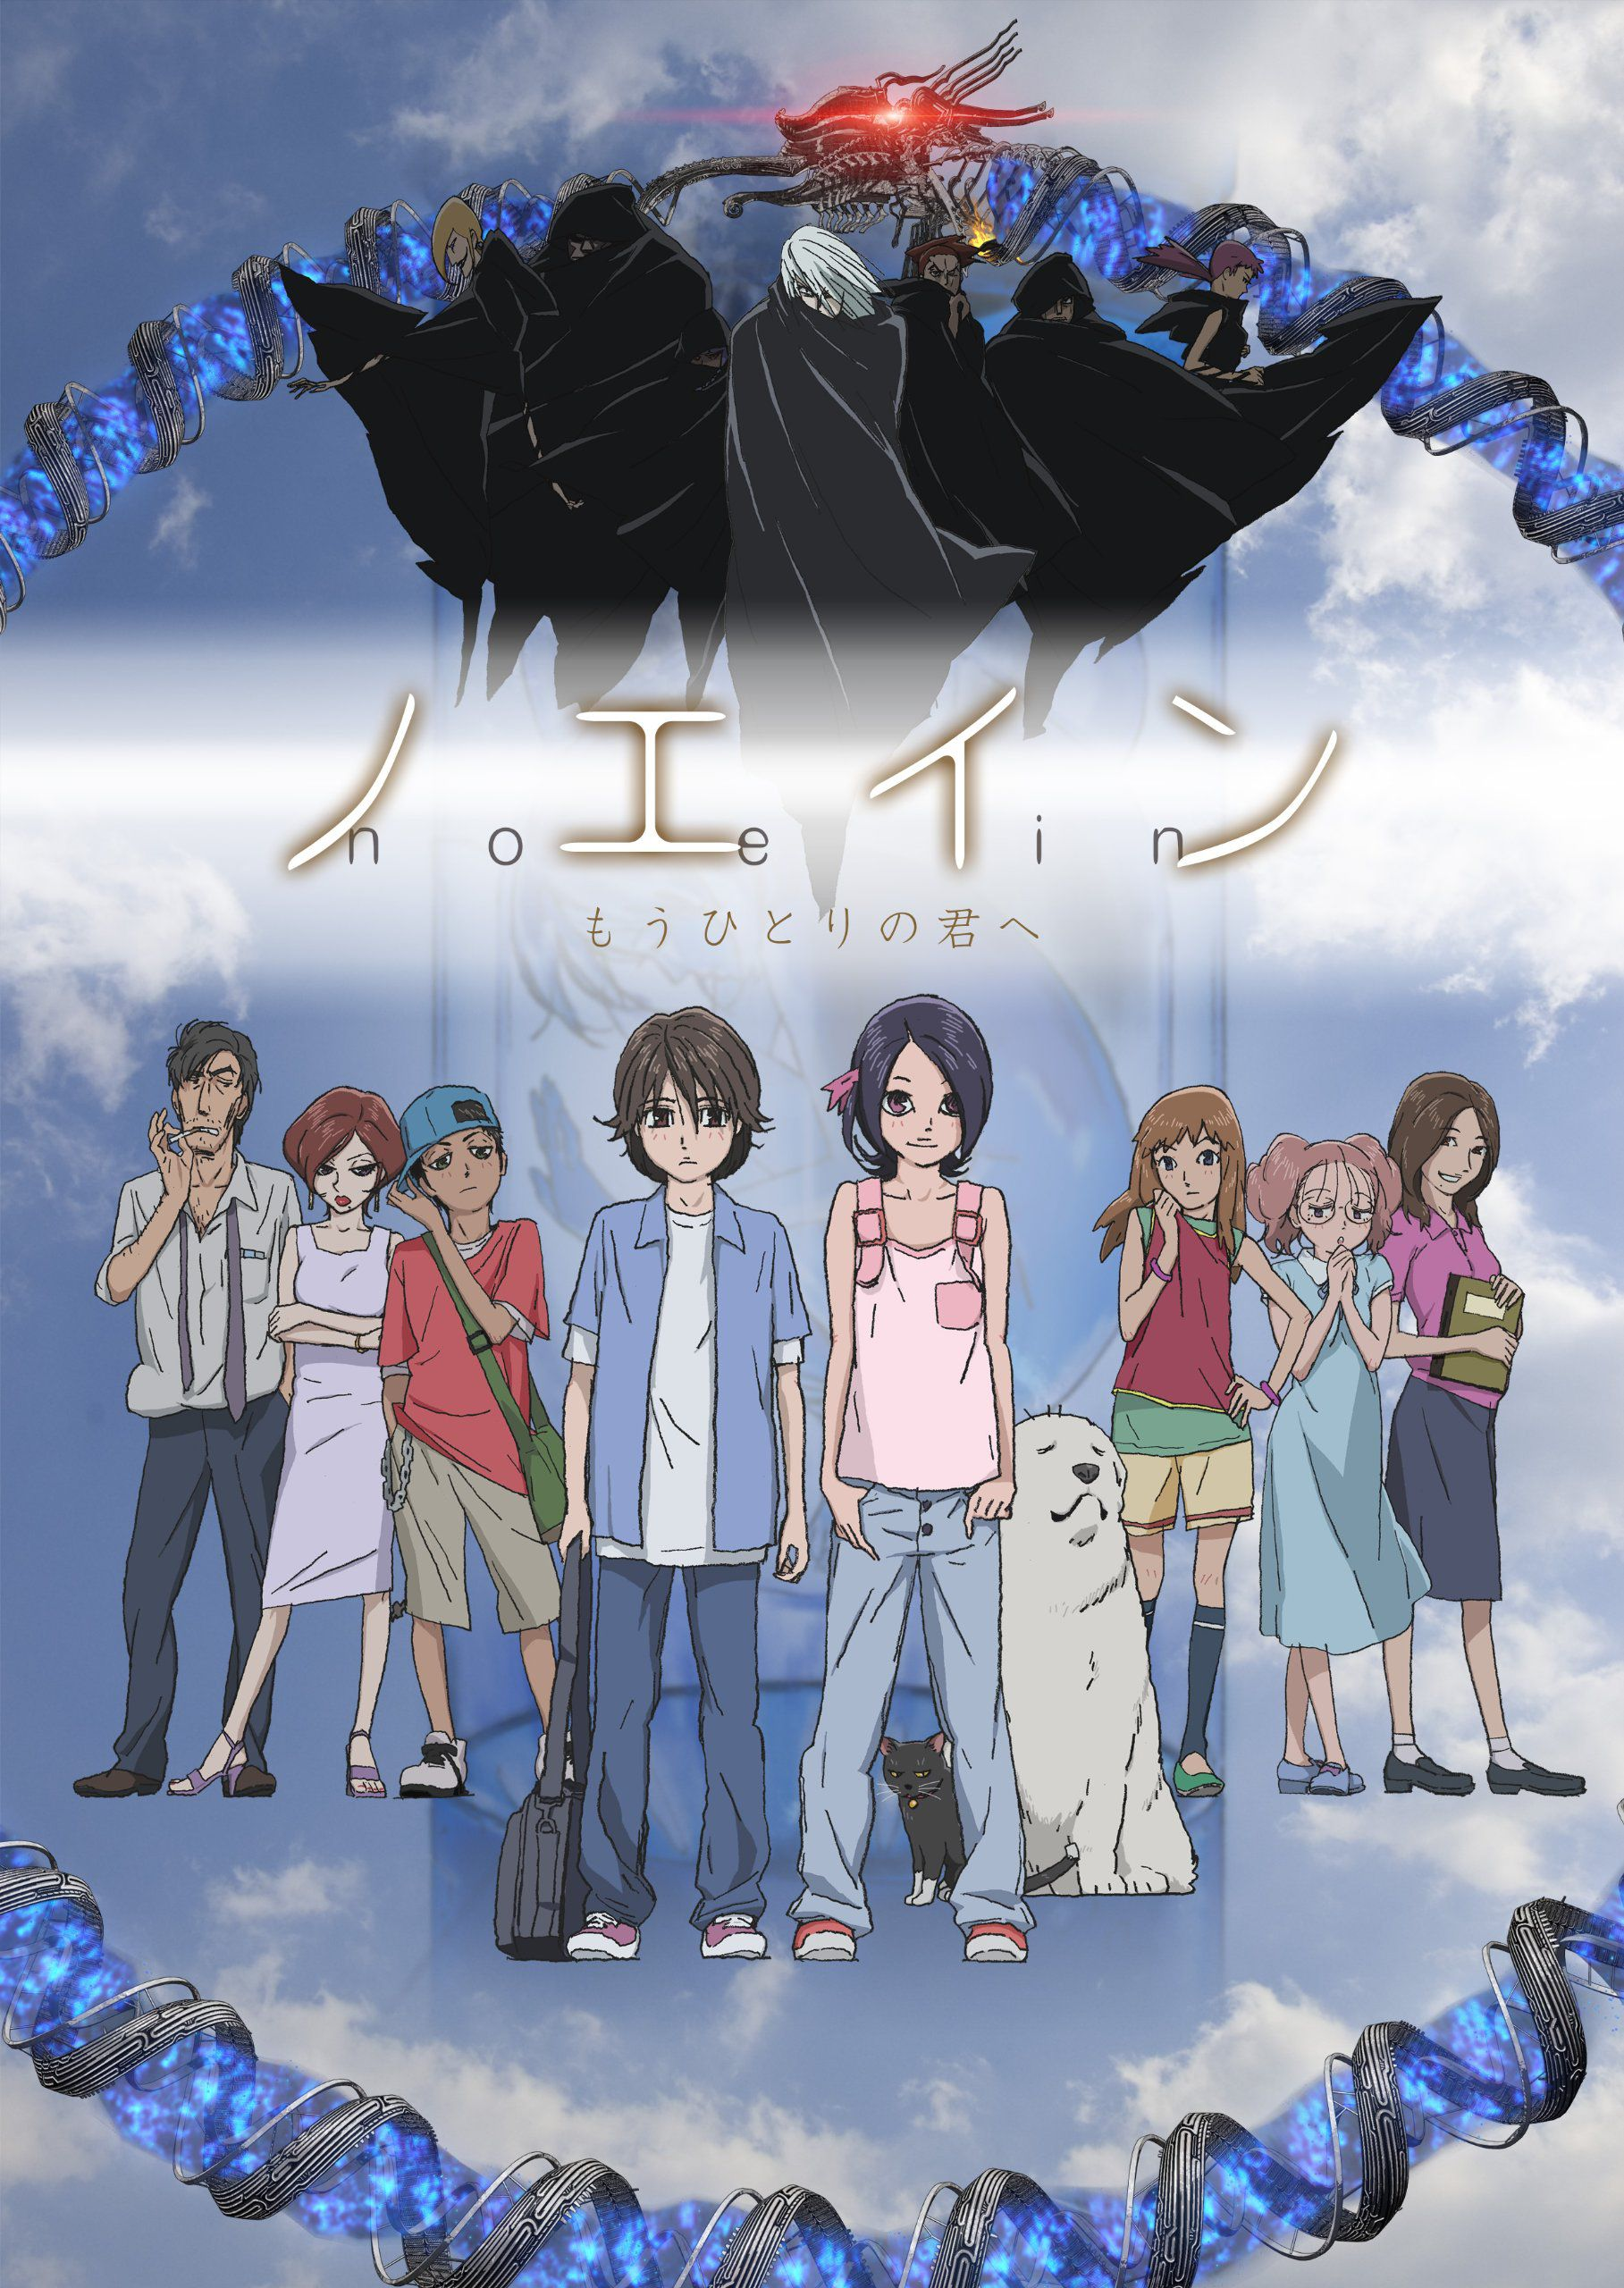 Noein: To Your Other Self - Anime (2005) streaming VF gratuit complet